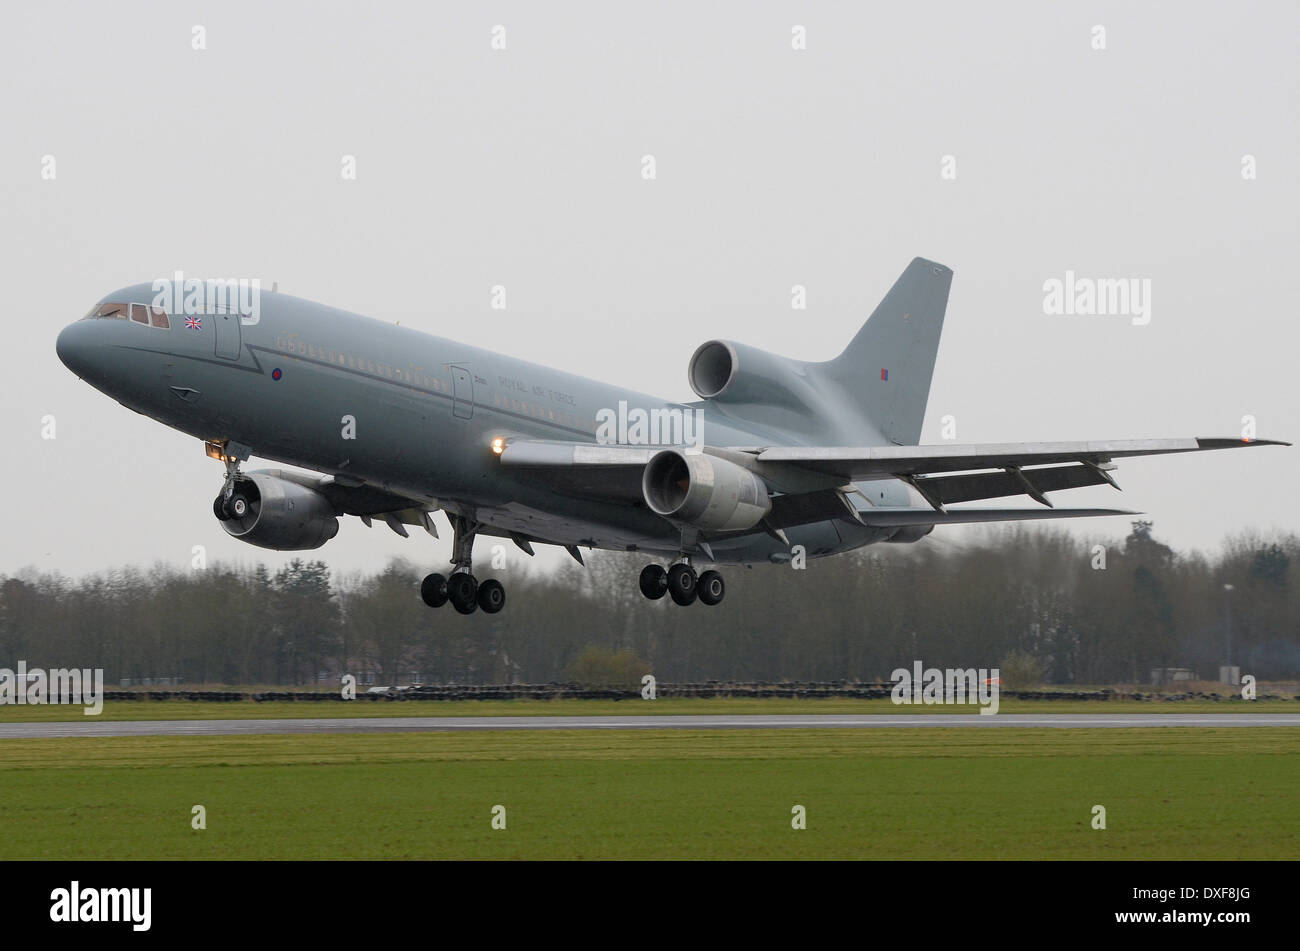 Marvelous TriStar Aircraft Operated By The RAF Landed For The Final Time For Storage  And Eventual Scrapping. The Royal Air Force Conducted Its Final Operational  ...